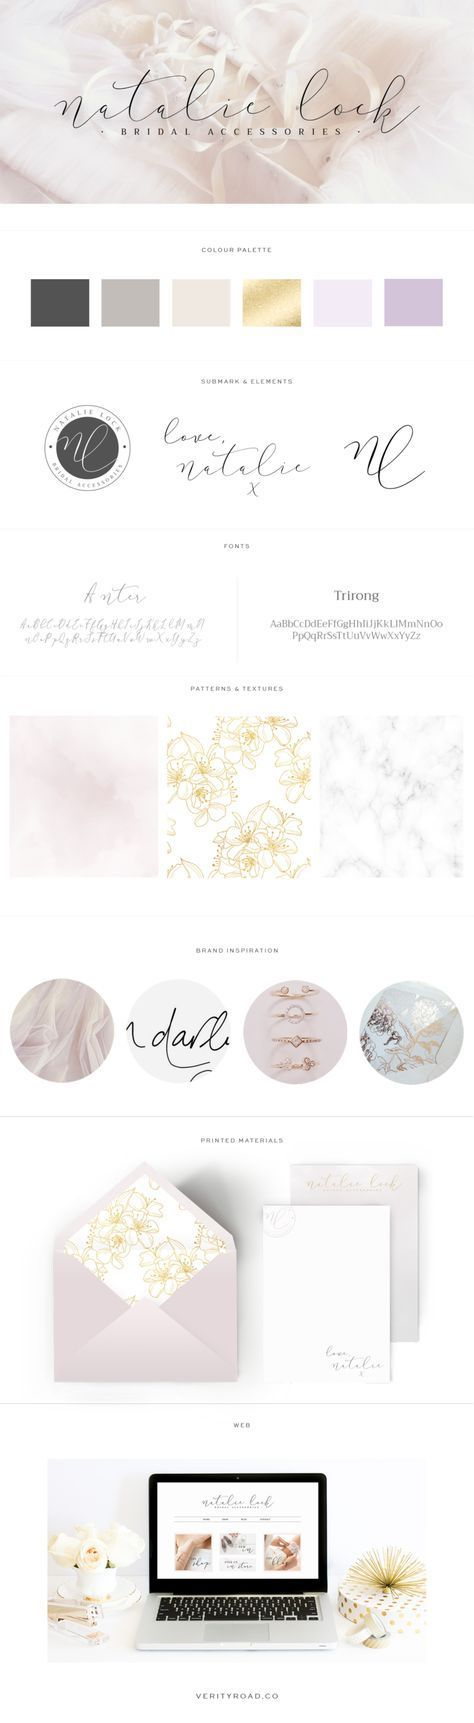 183 best creative design images on pinterest graph design brand style board for natalie lock bridal this luxury brand design board for a wedding fandeluxe Gallery